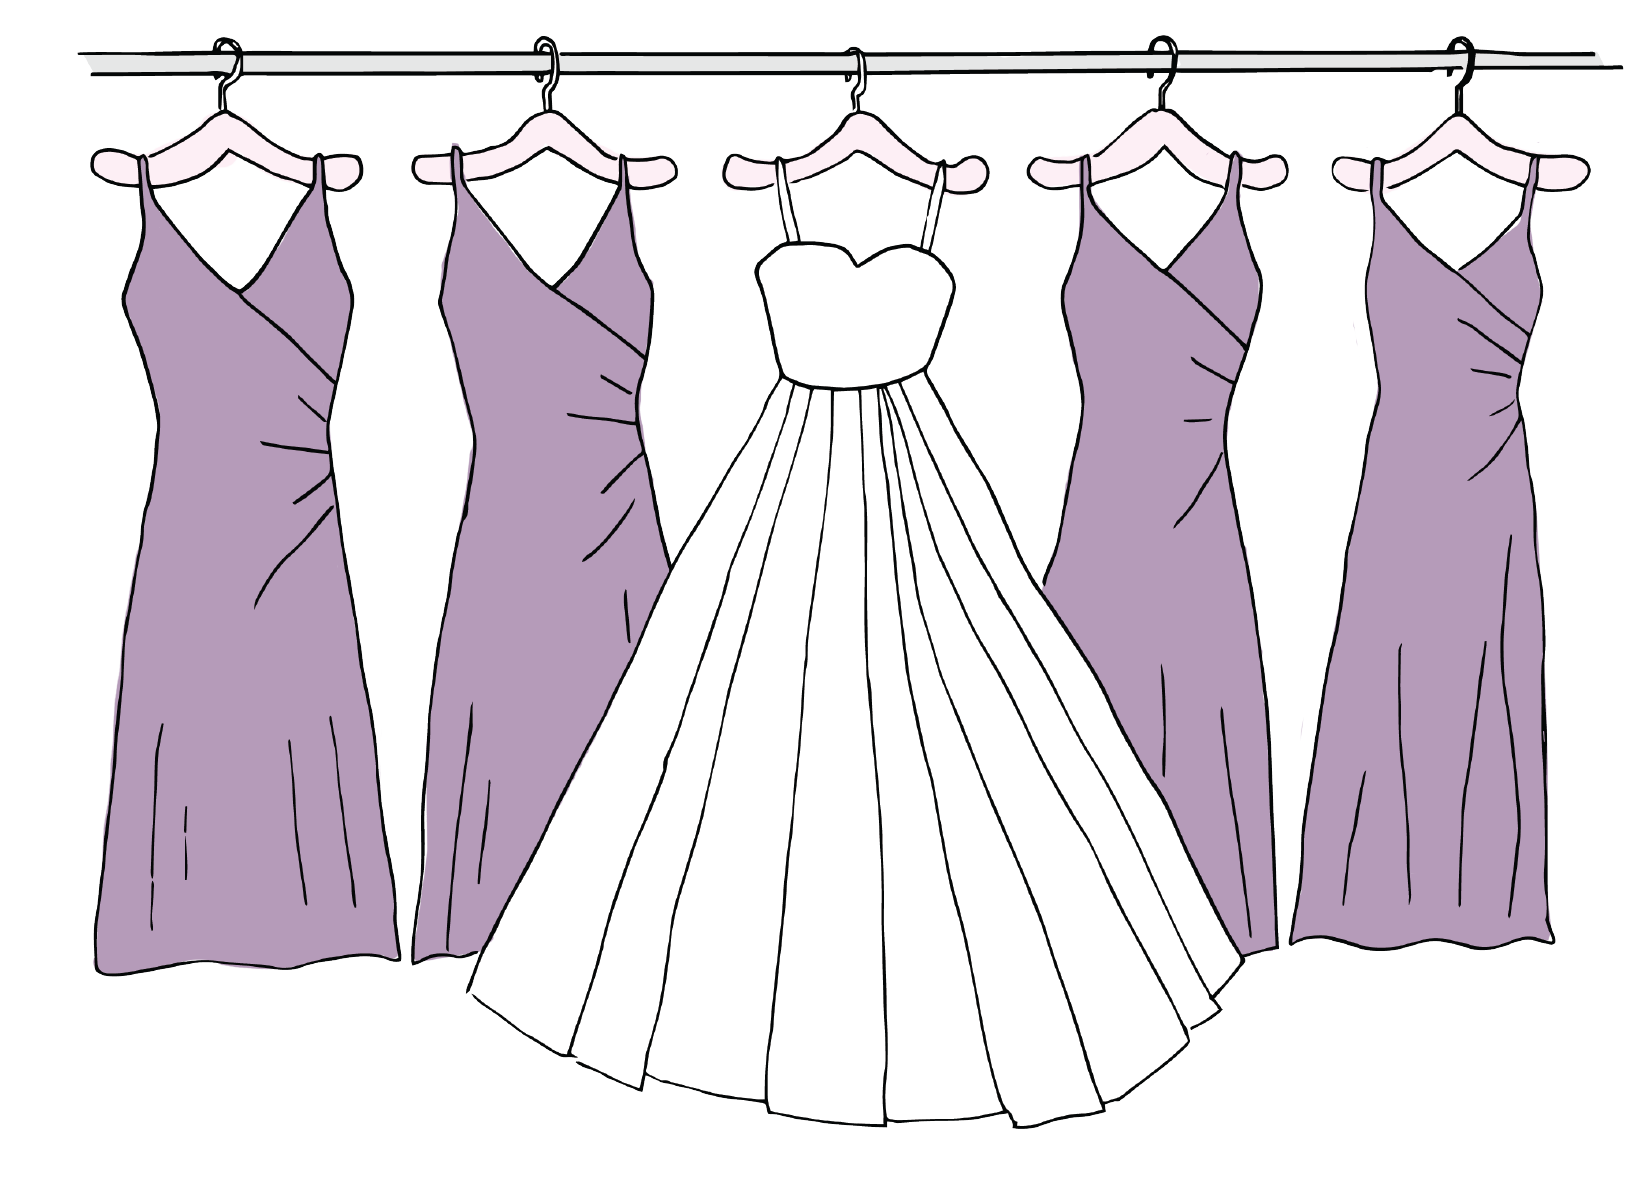 73% of brides have 4 or fewer bridesmaids, with only 7% of brides having none at all